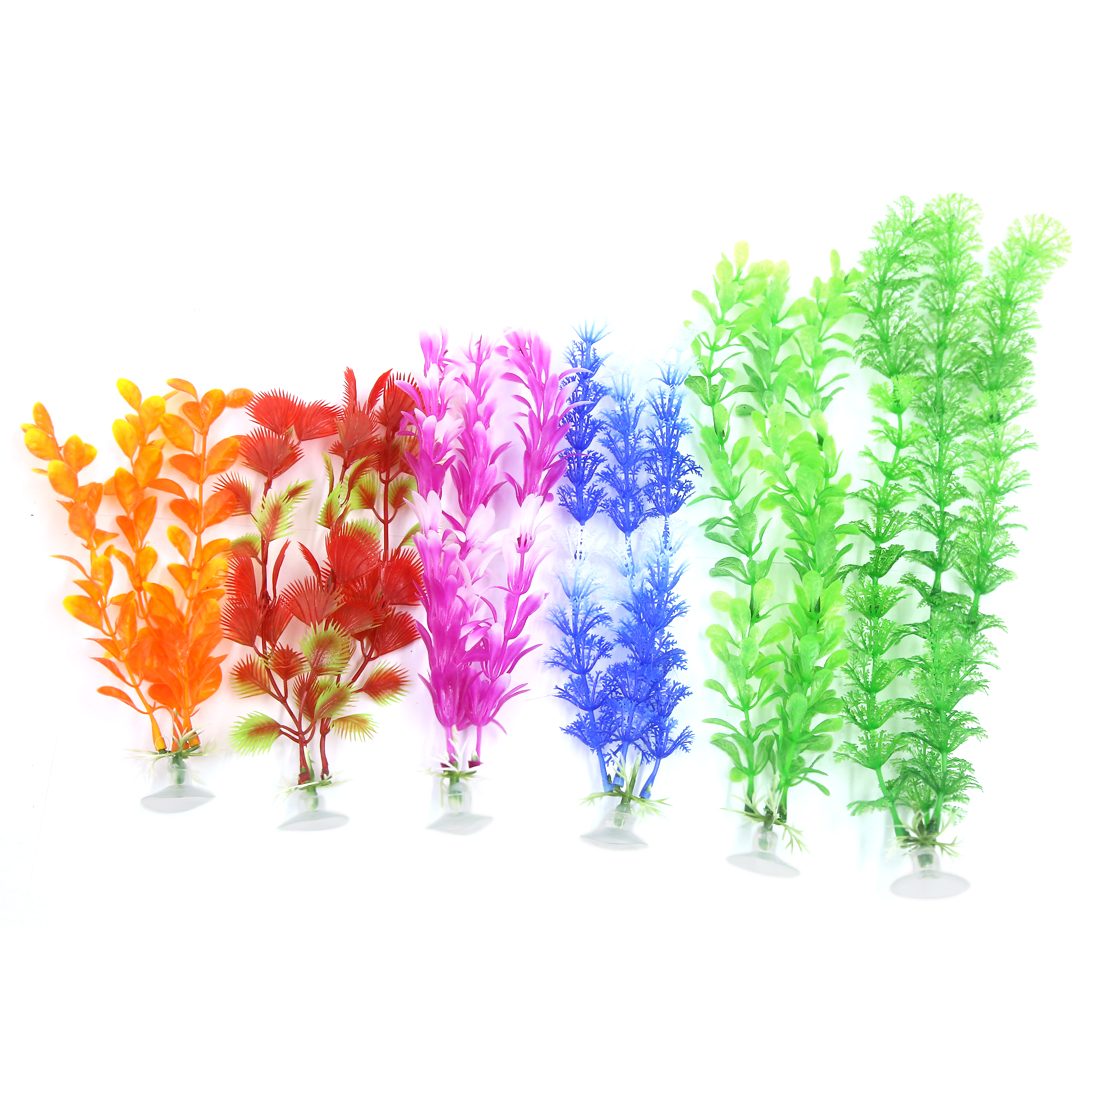 6 Pcs Aquarium Ornament Plastic Decoration Plants